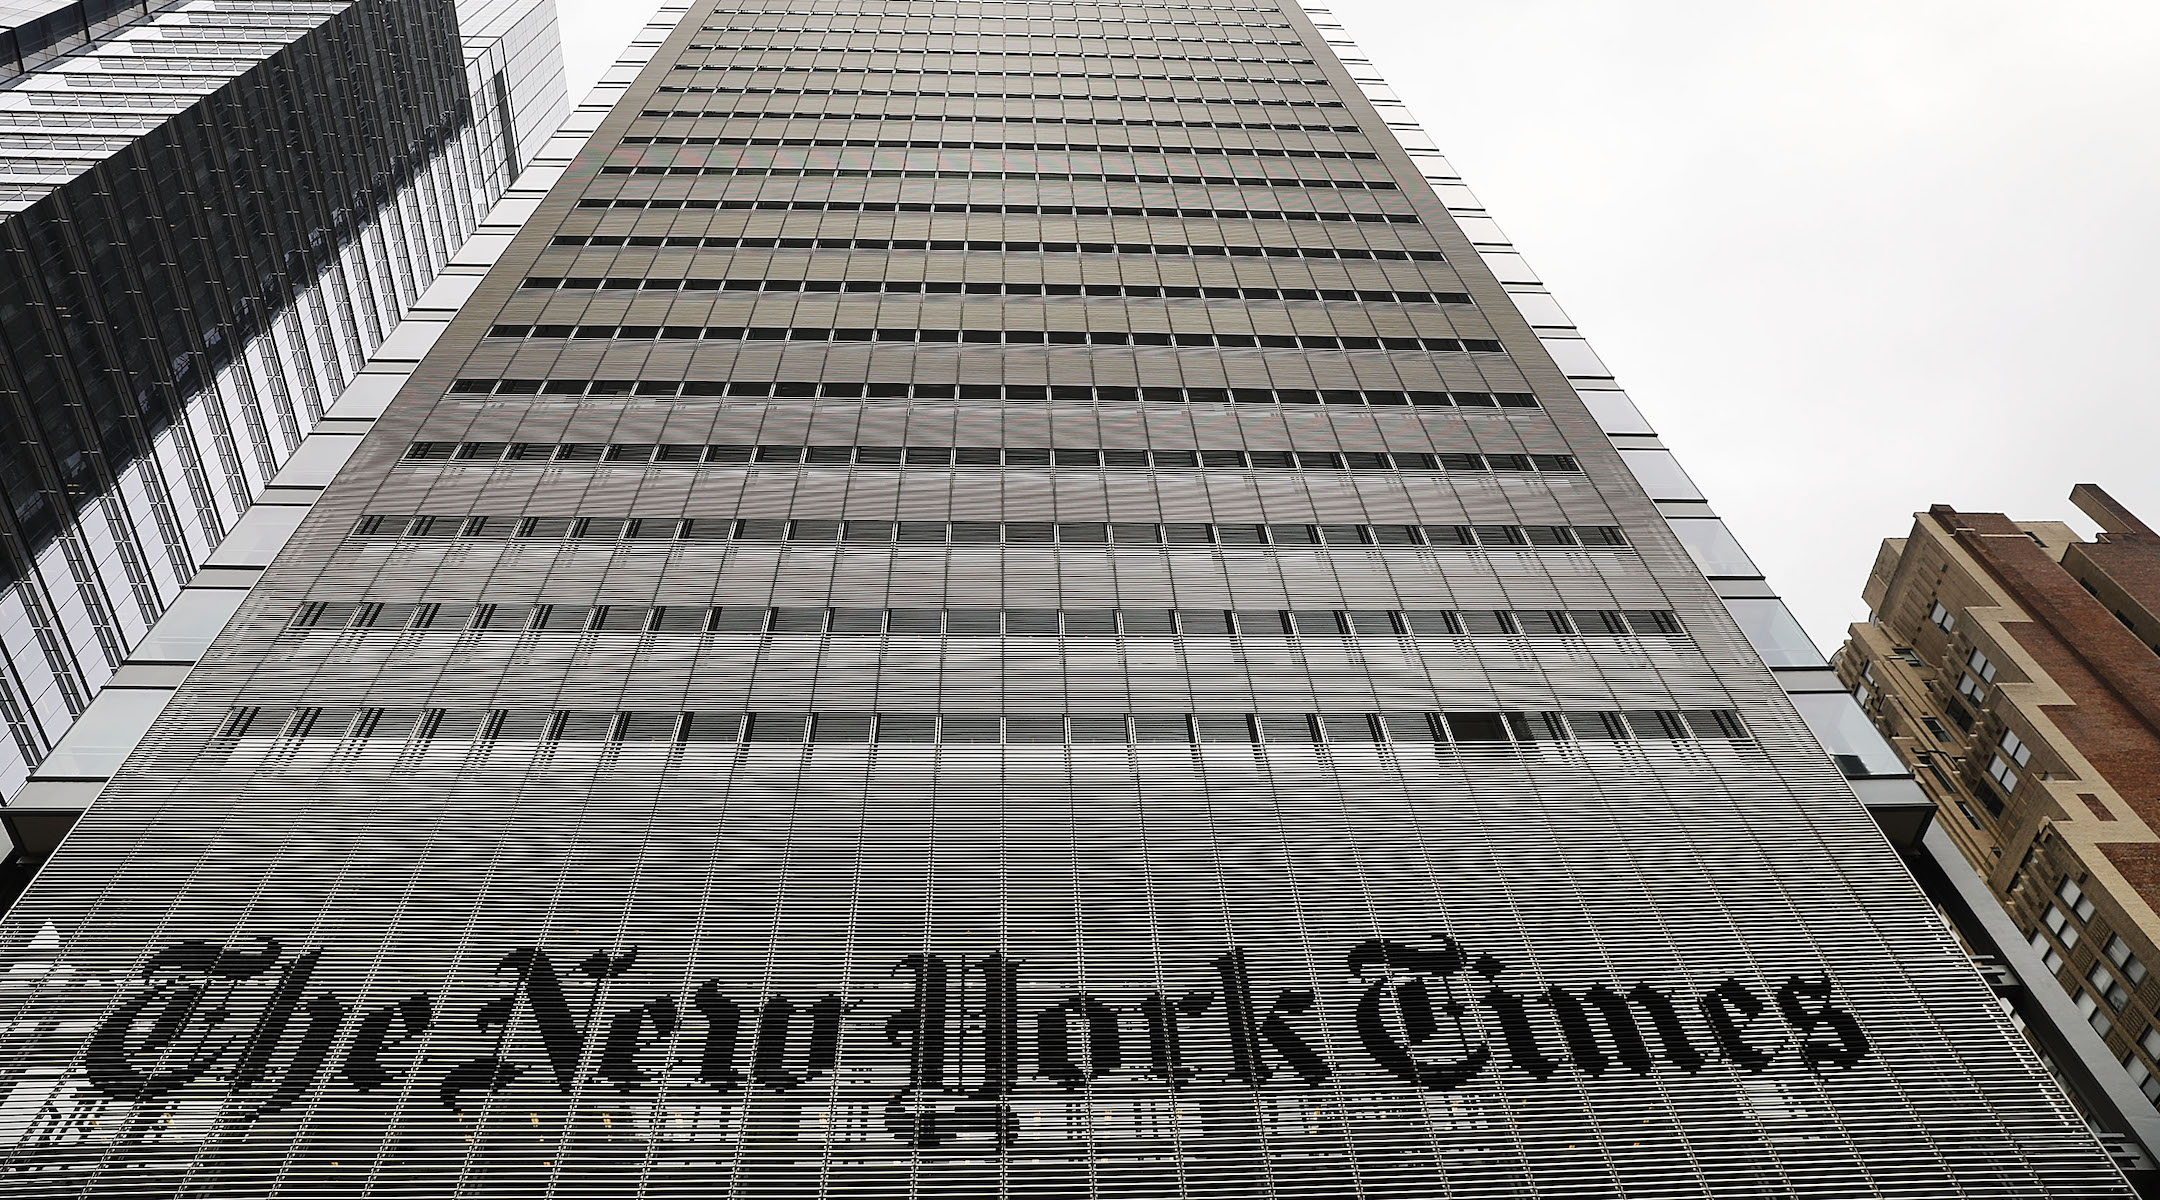 12 Rabbis Meet With New York Times About Its Anti Semitic Cartoon